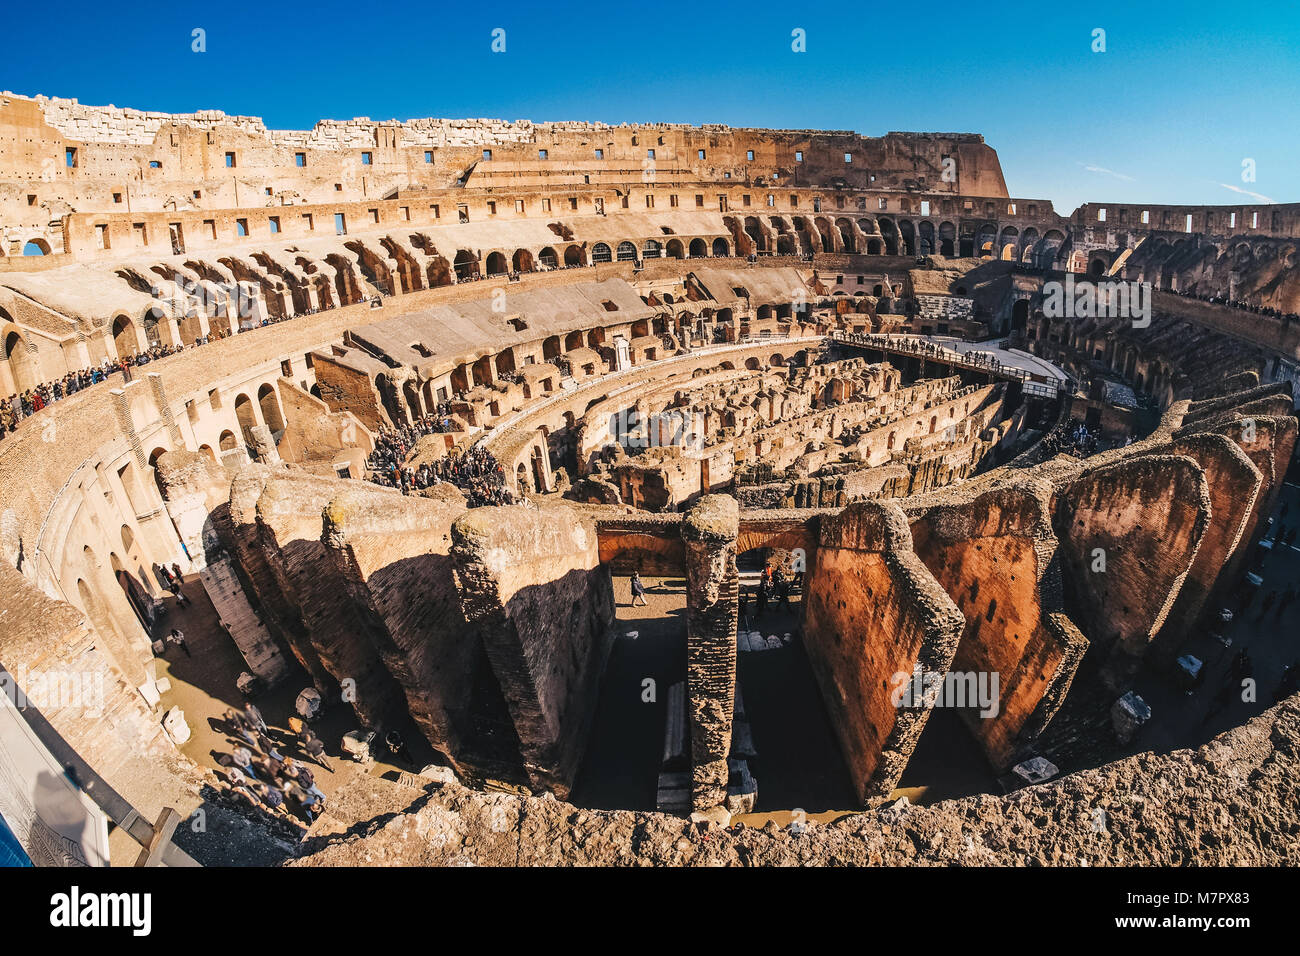 Inside the Roman Colosseum in Rome, Italy - Stock Image